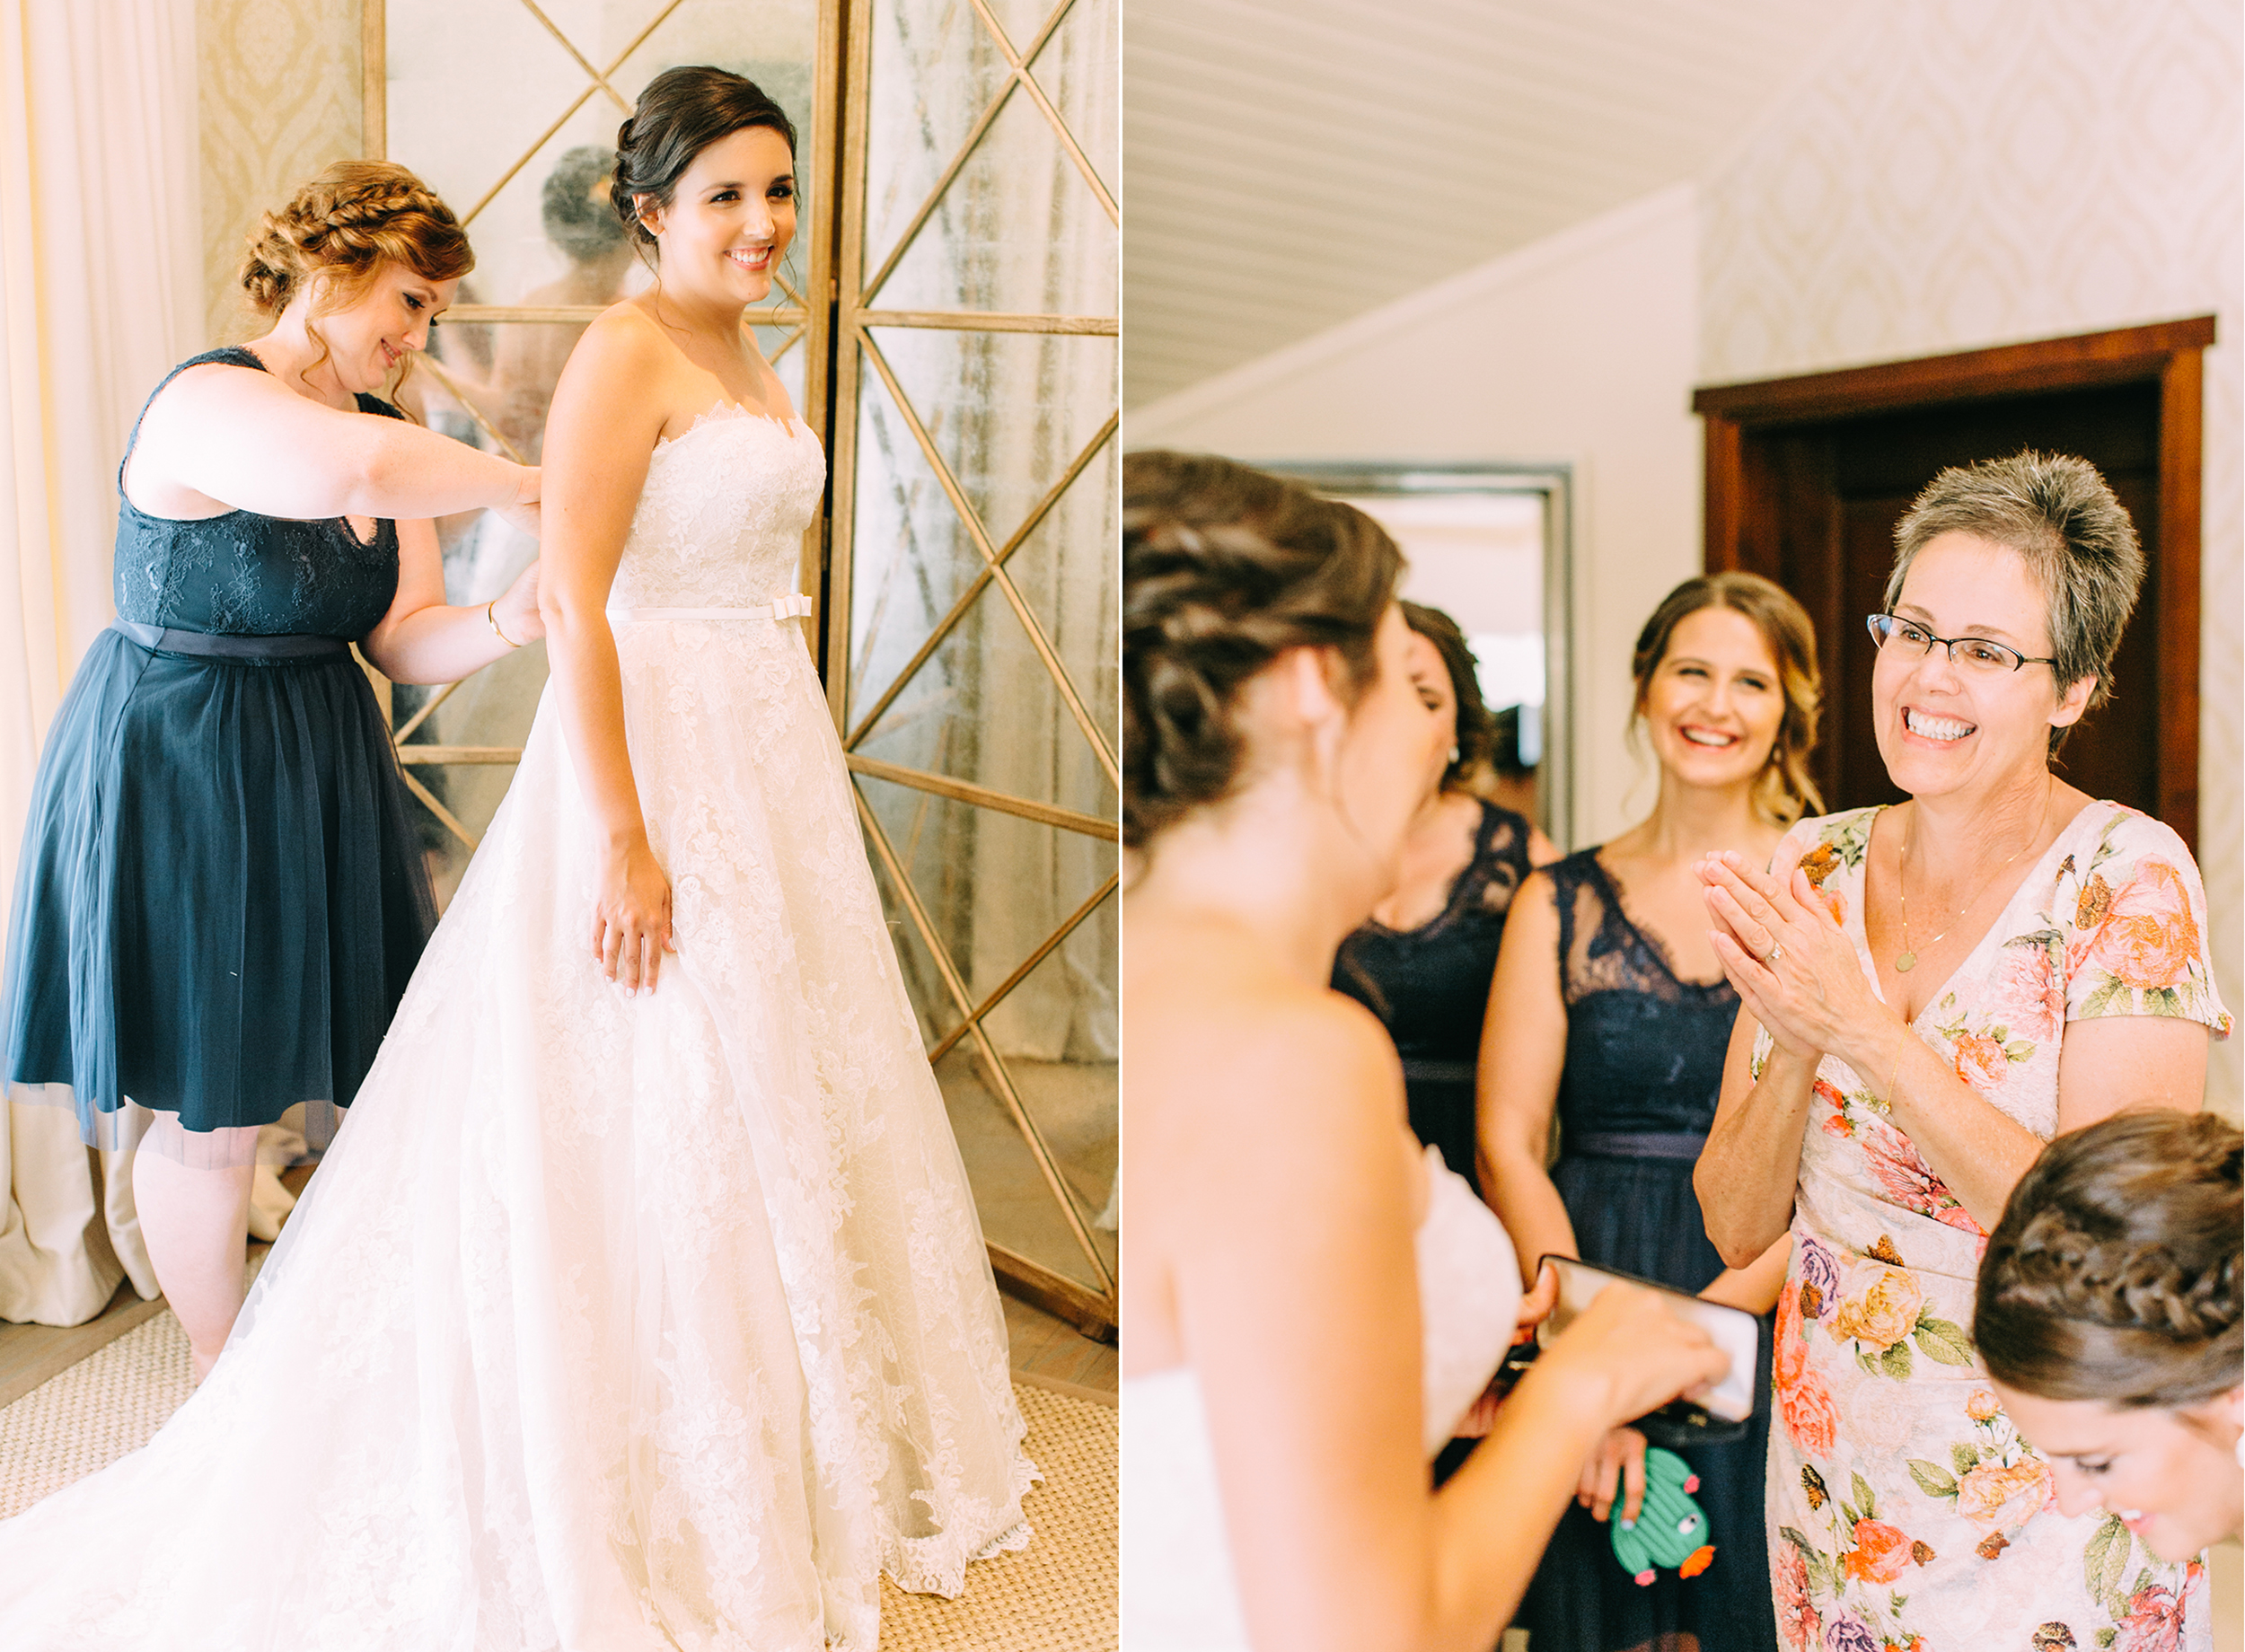 katie stoops photography-pippin hill-ashley baber weddings05.jpg